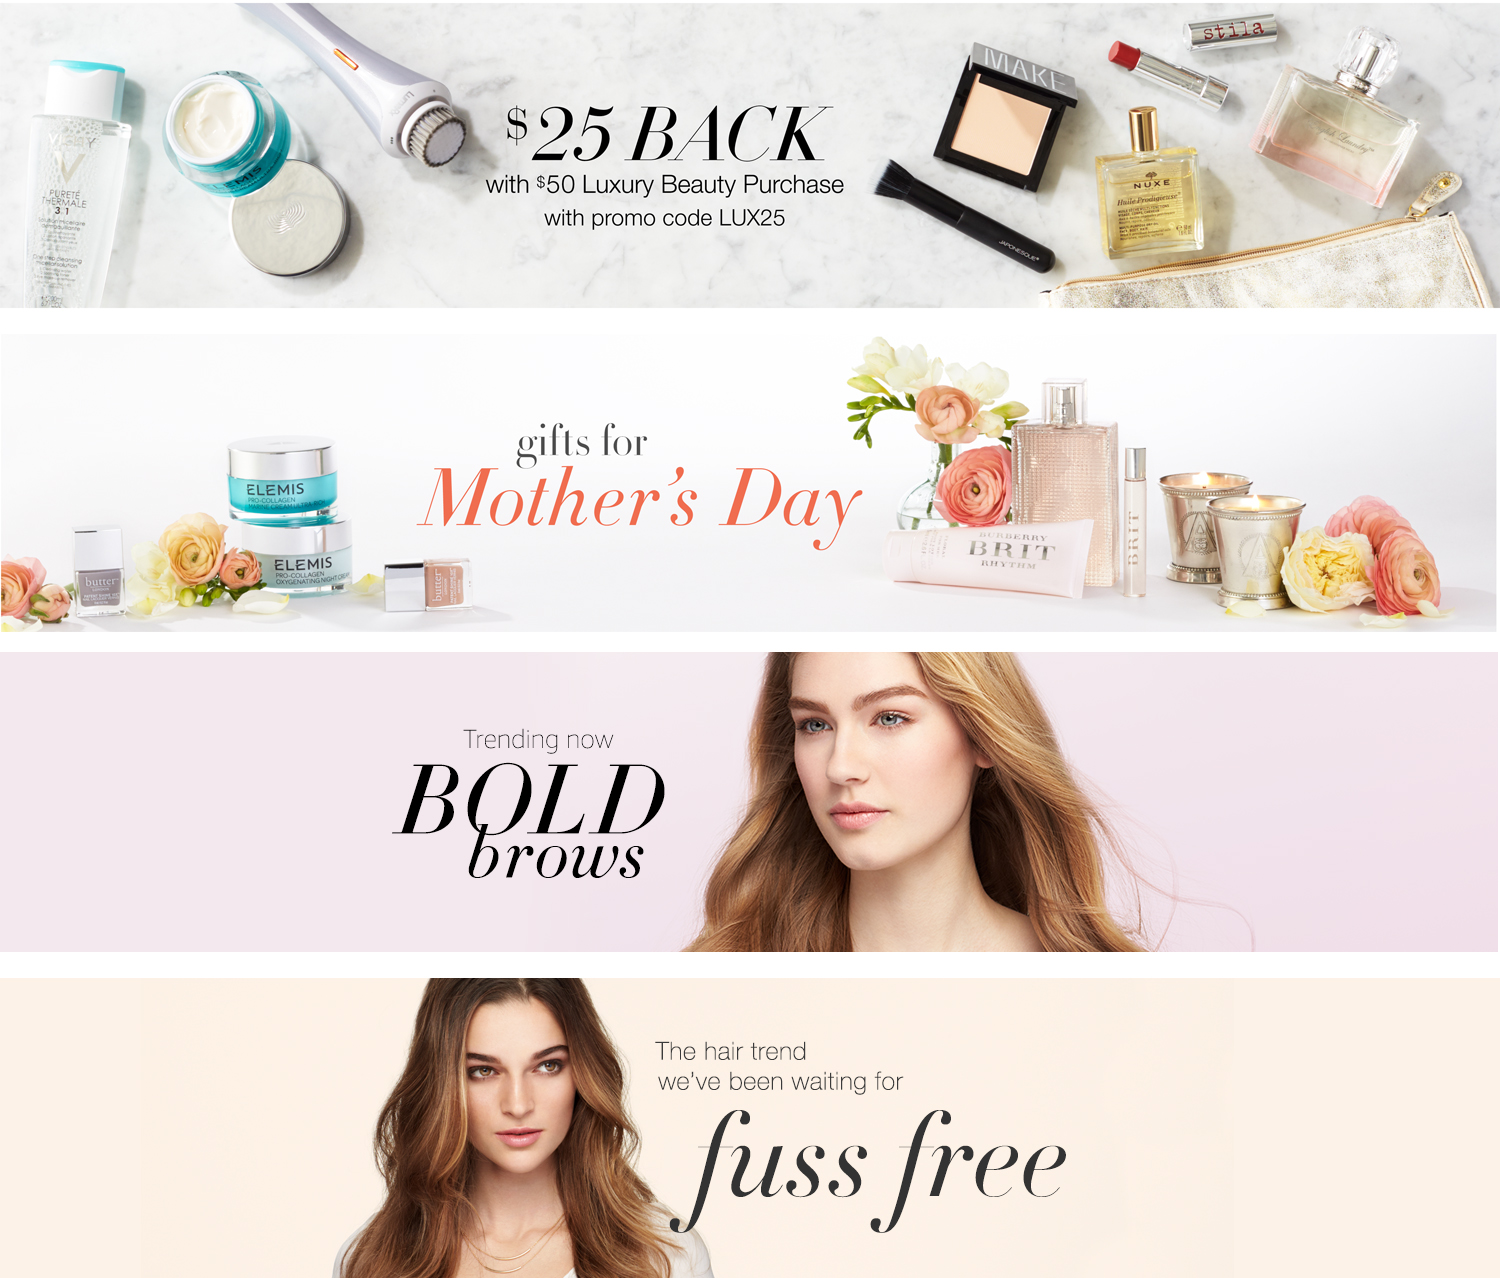 retail_lux-beauty_spring_showcases